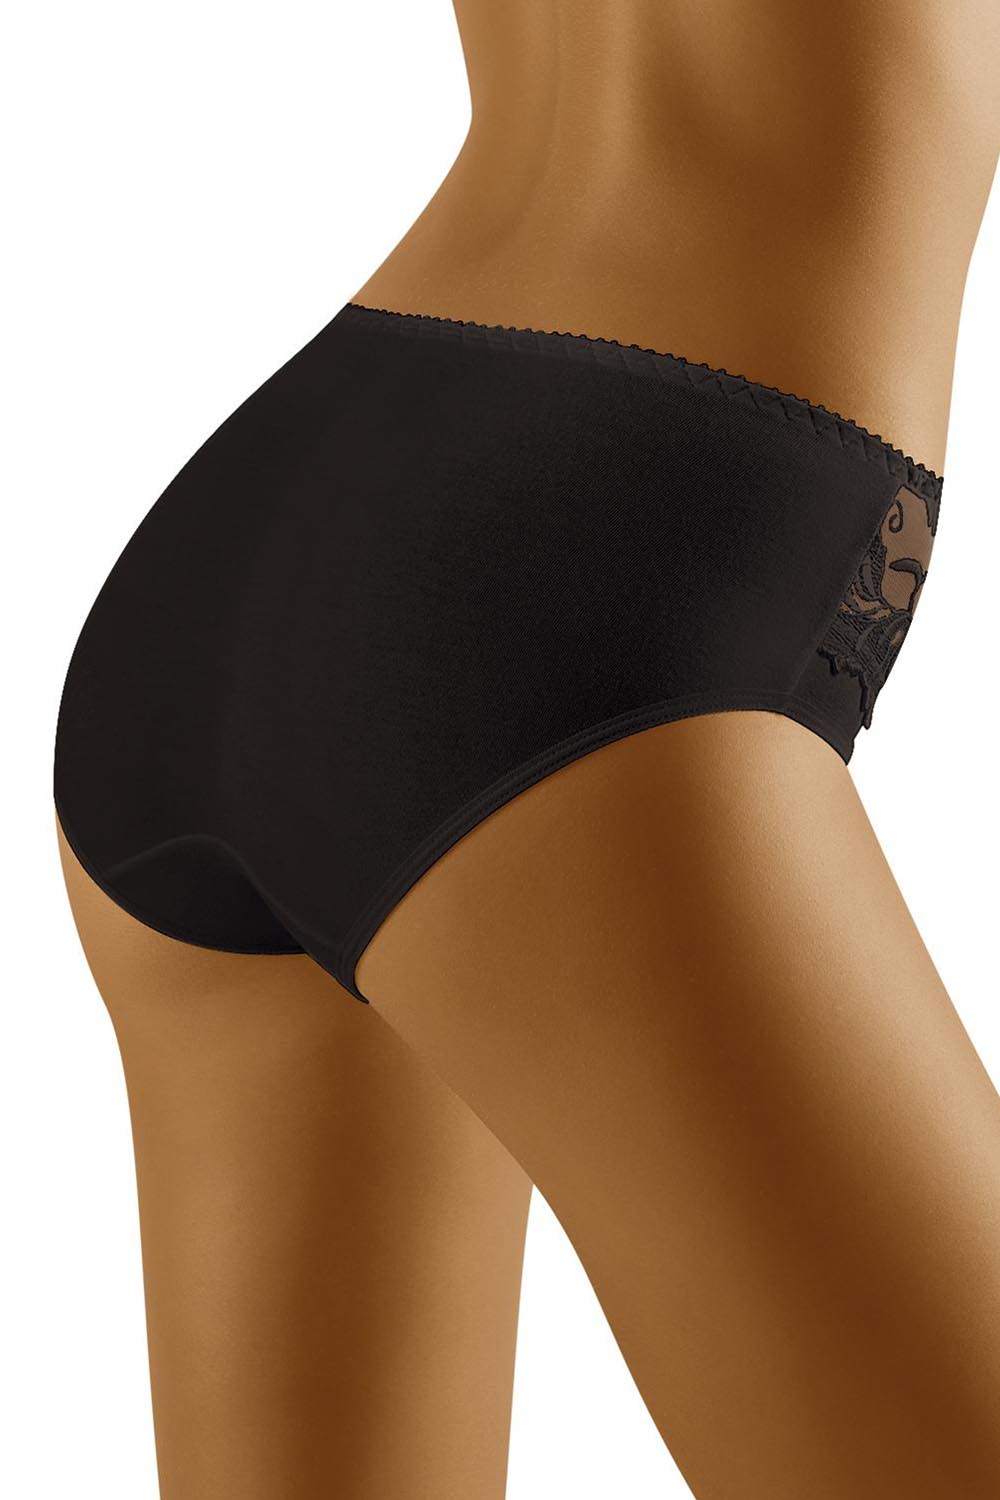 Wolbar Womens Briefs WB41 New Panties Comfortable Underwear,Top Quality